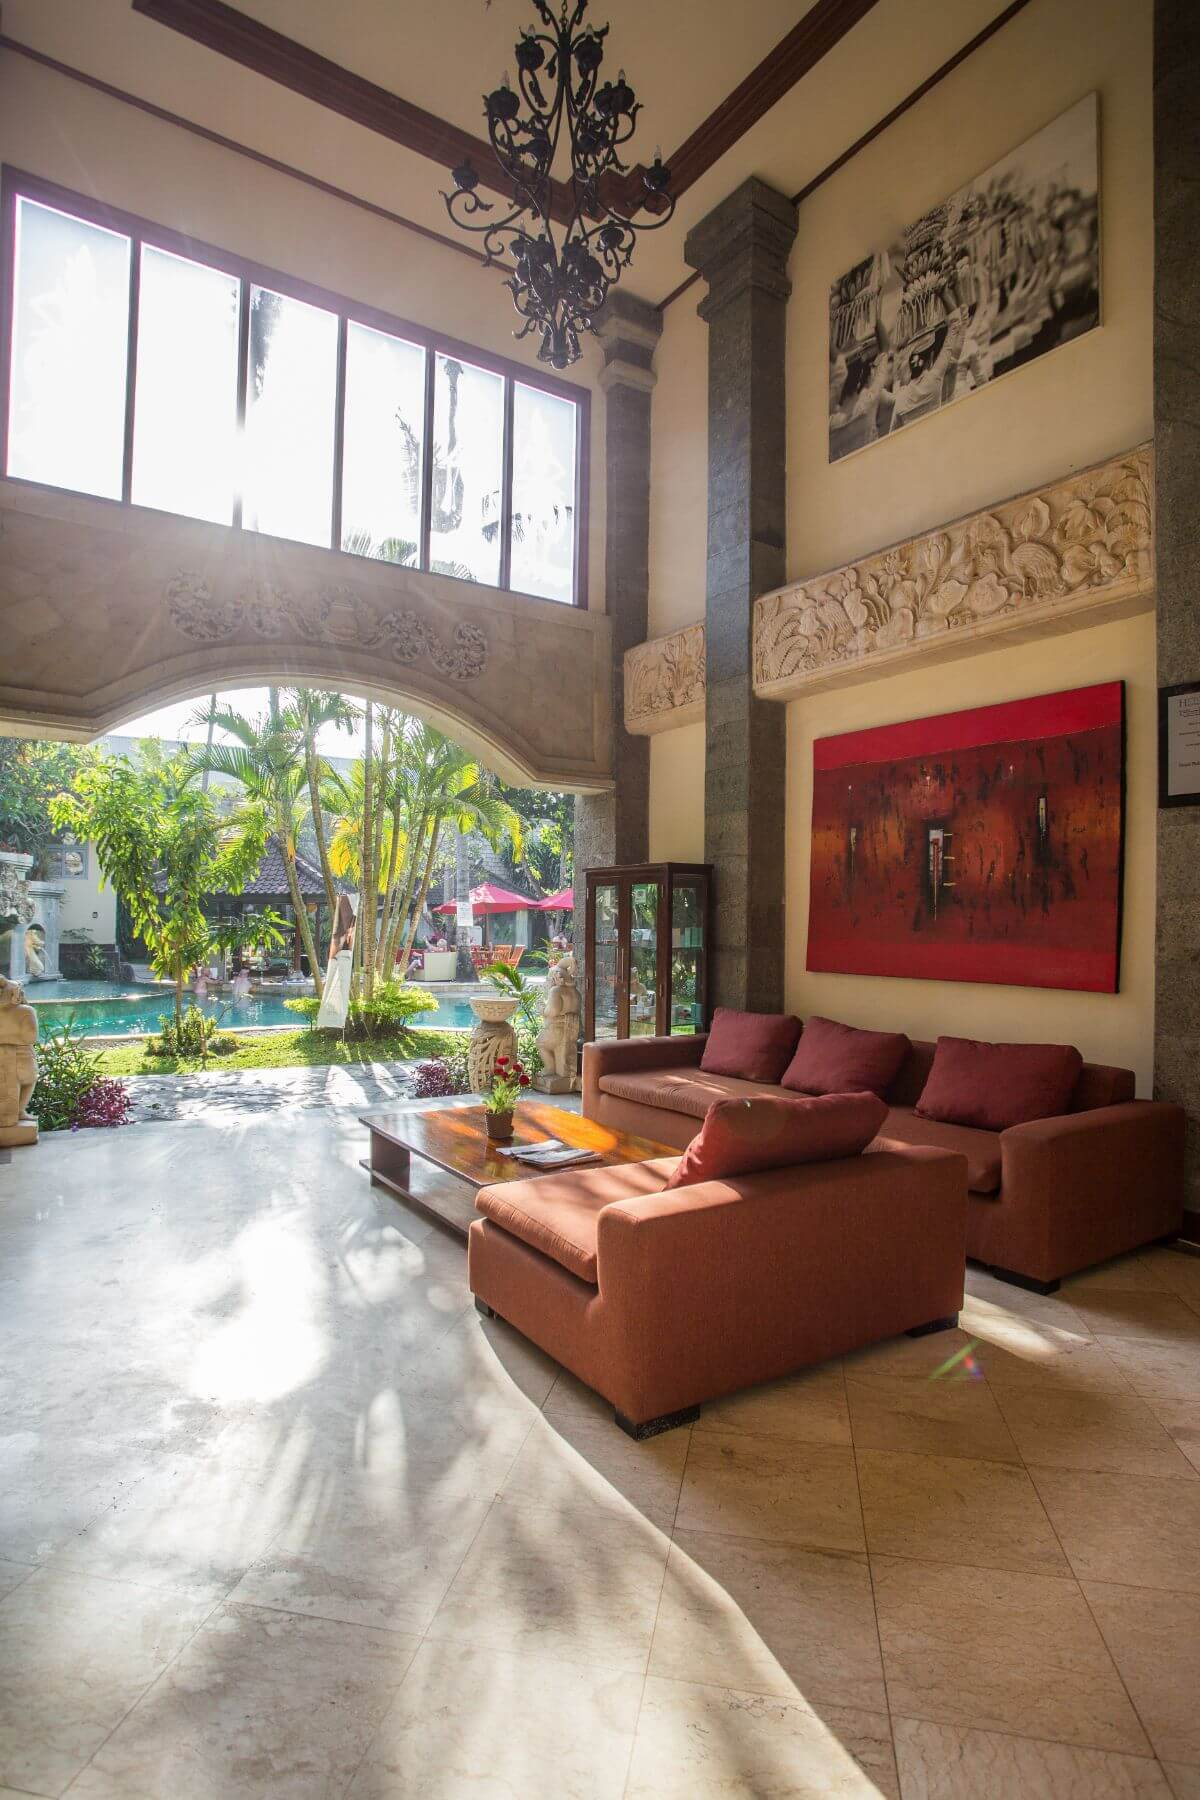 luxury hotel of Karma Royal Sanur Entrance Lobby view